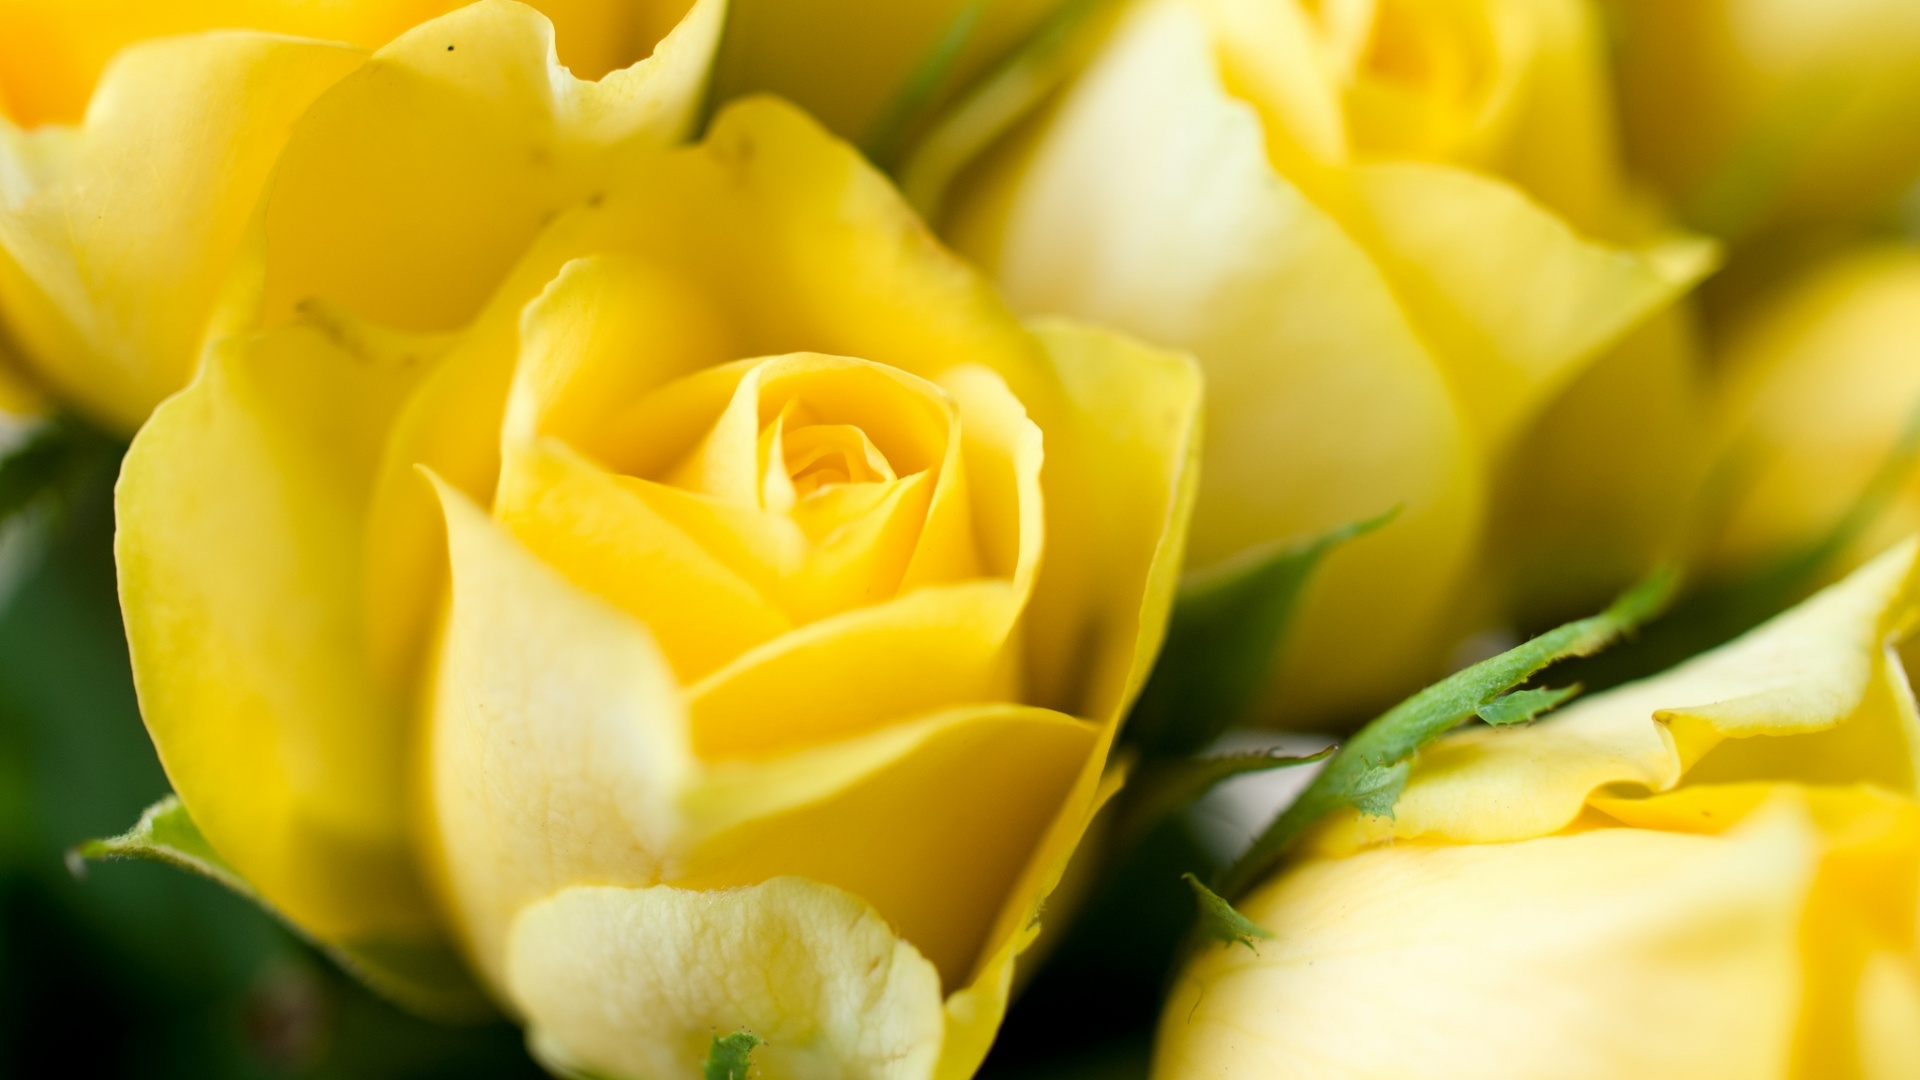 yellow roses background wallpapers 1920x1080 332278